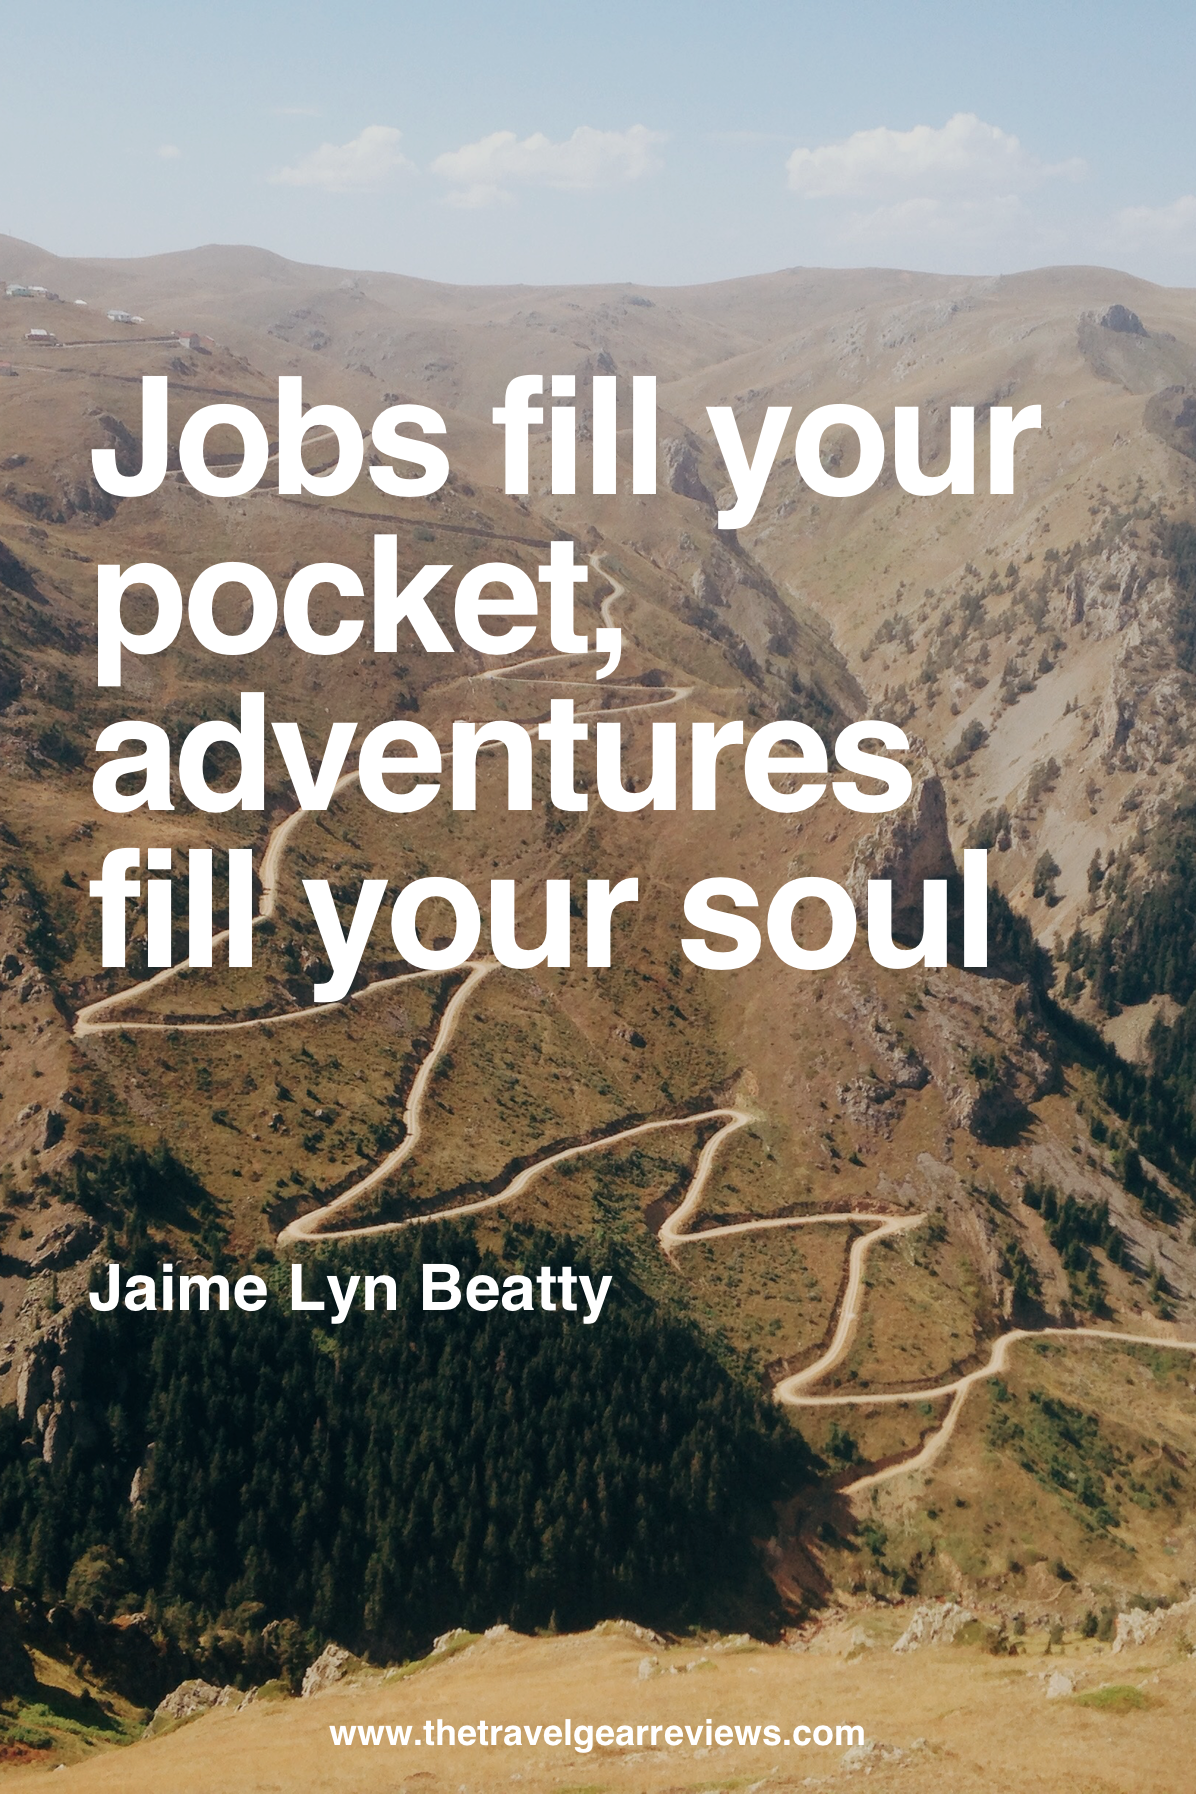 best travel quotes and saying quote life inspiration and jobs fill your pocket adventures fill your soul jaime lyn beatty 100 best